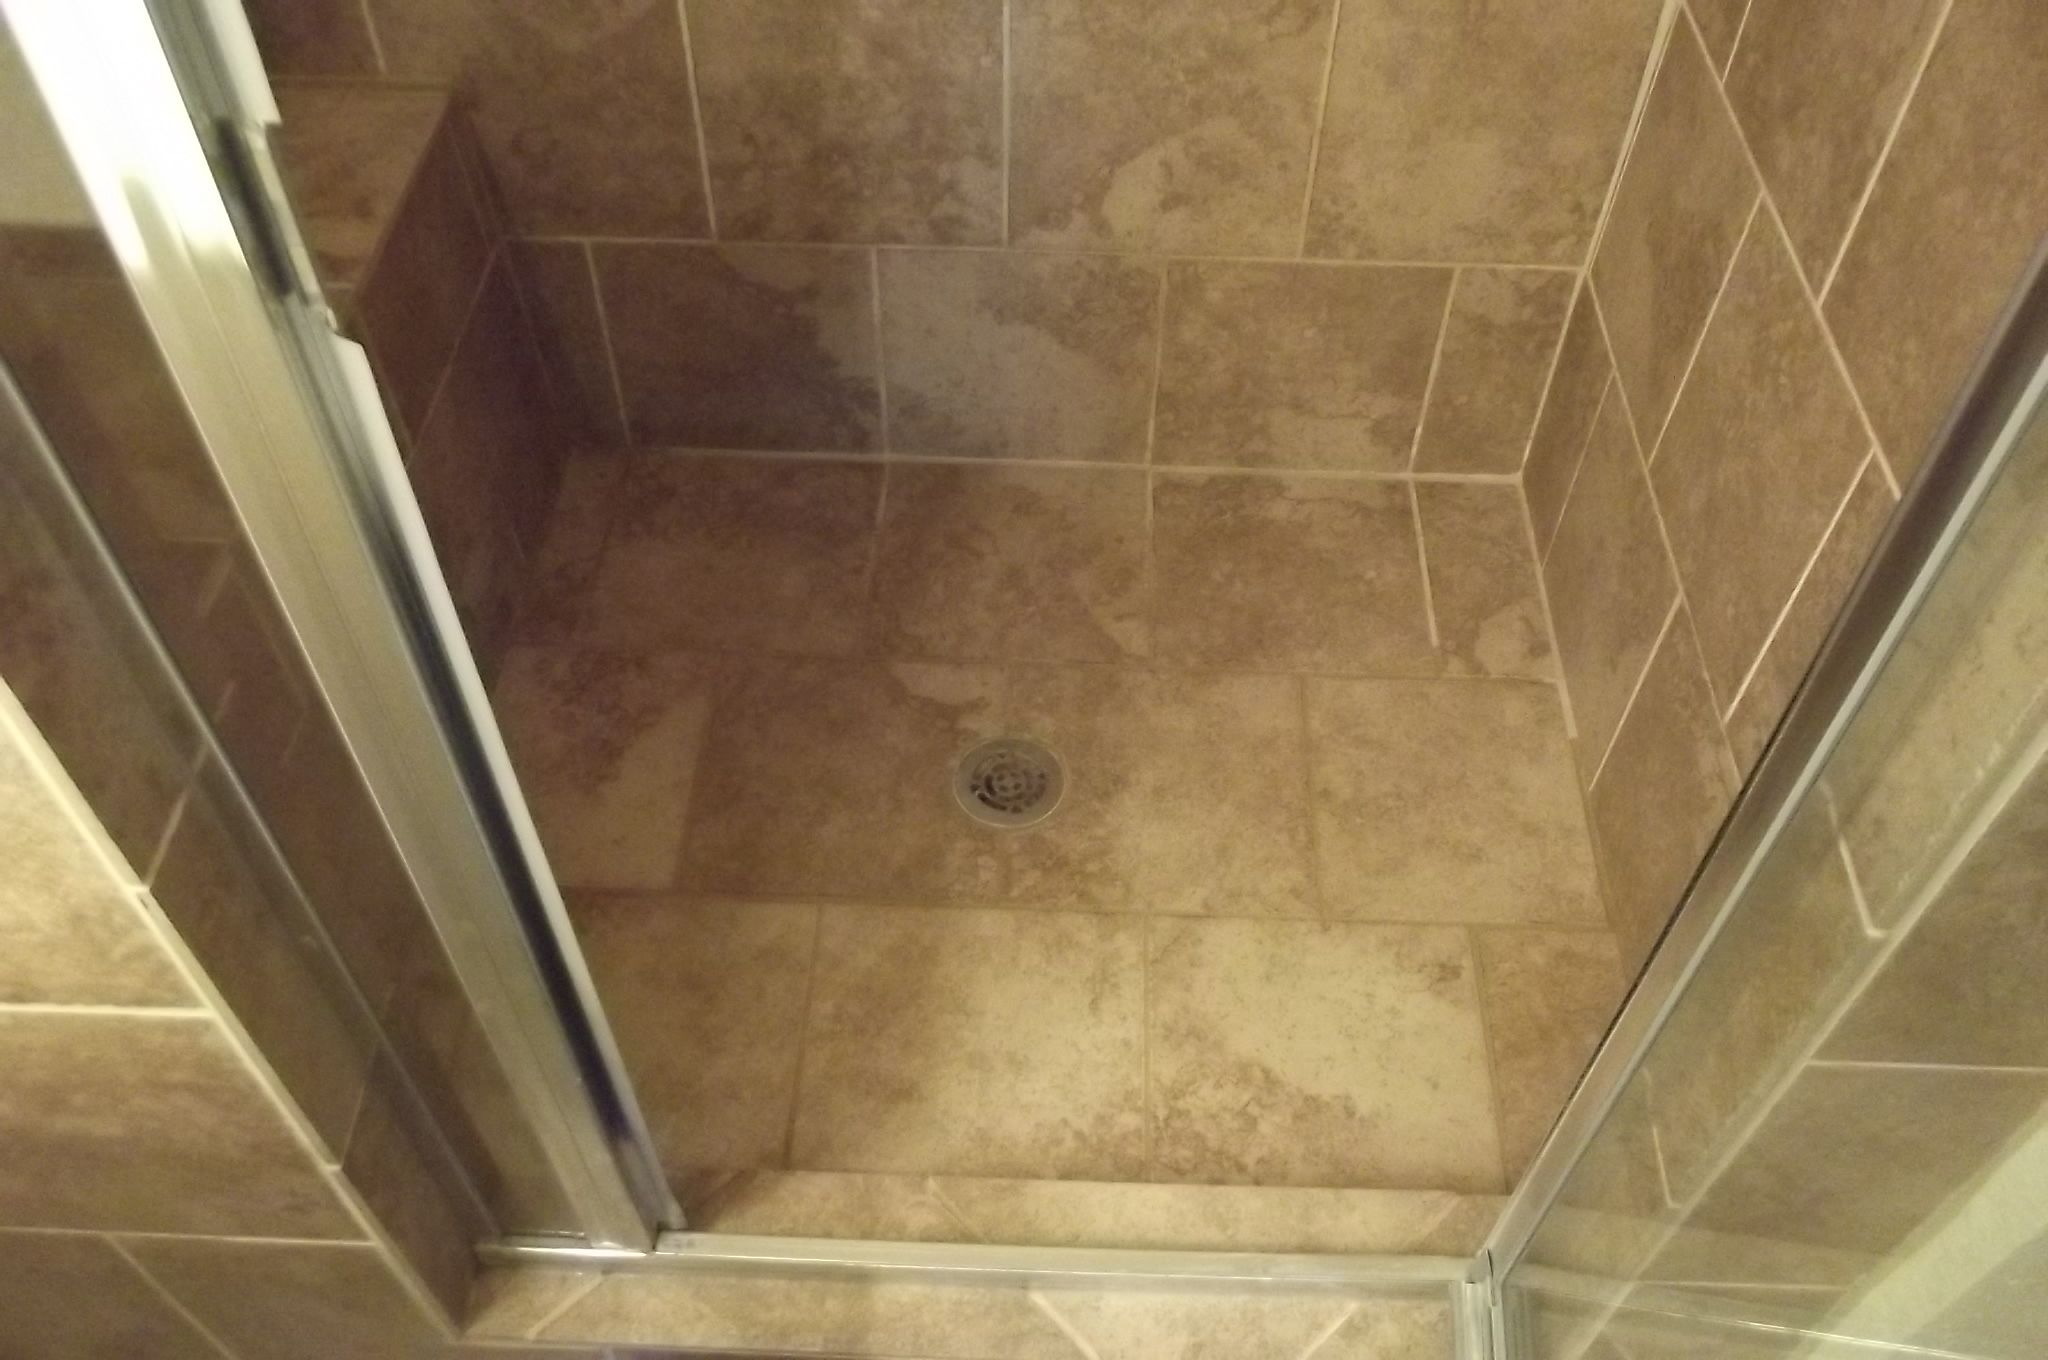 Shower Pans And The Tile Slope Towards The Drain Not Leave A 1 4